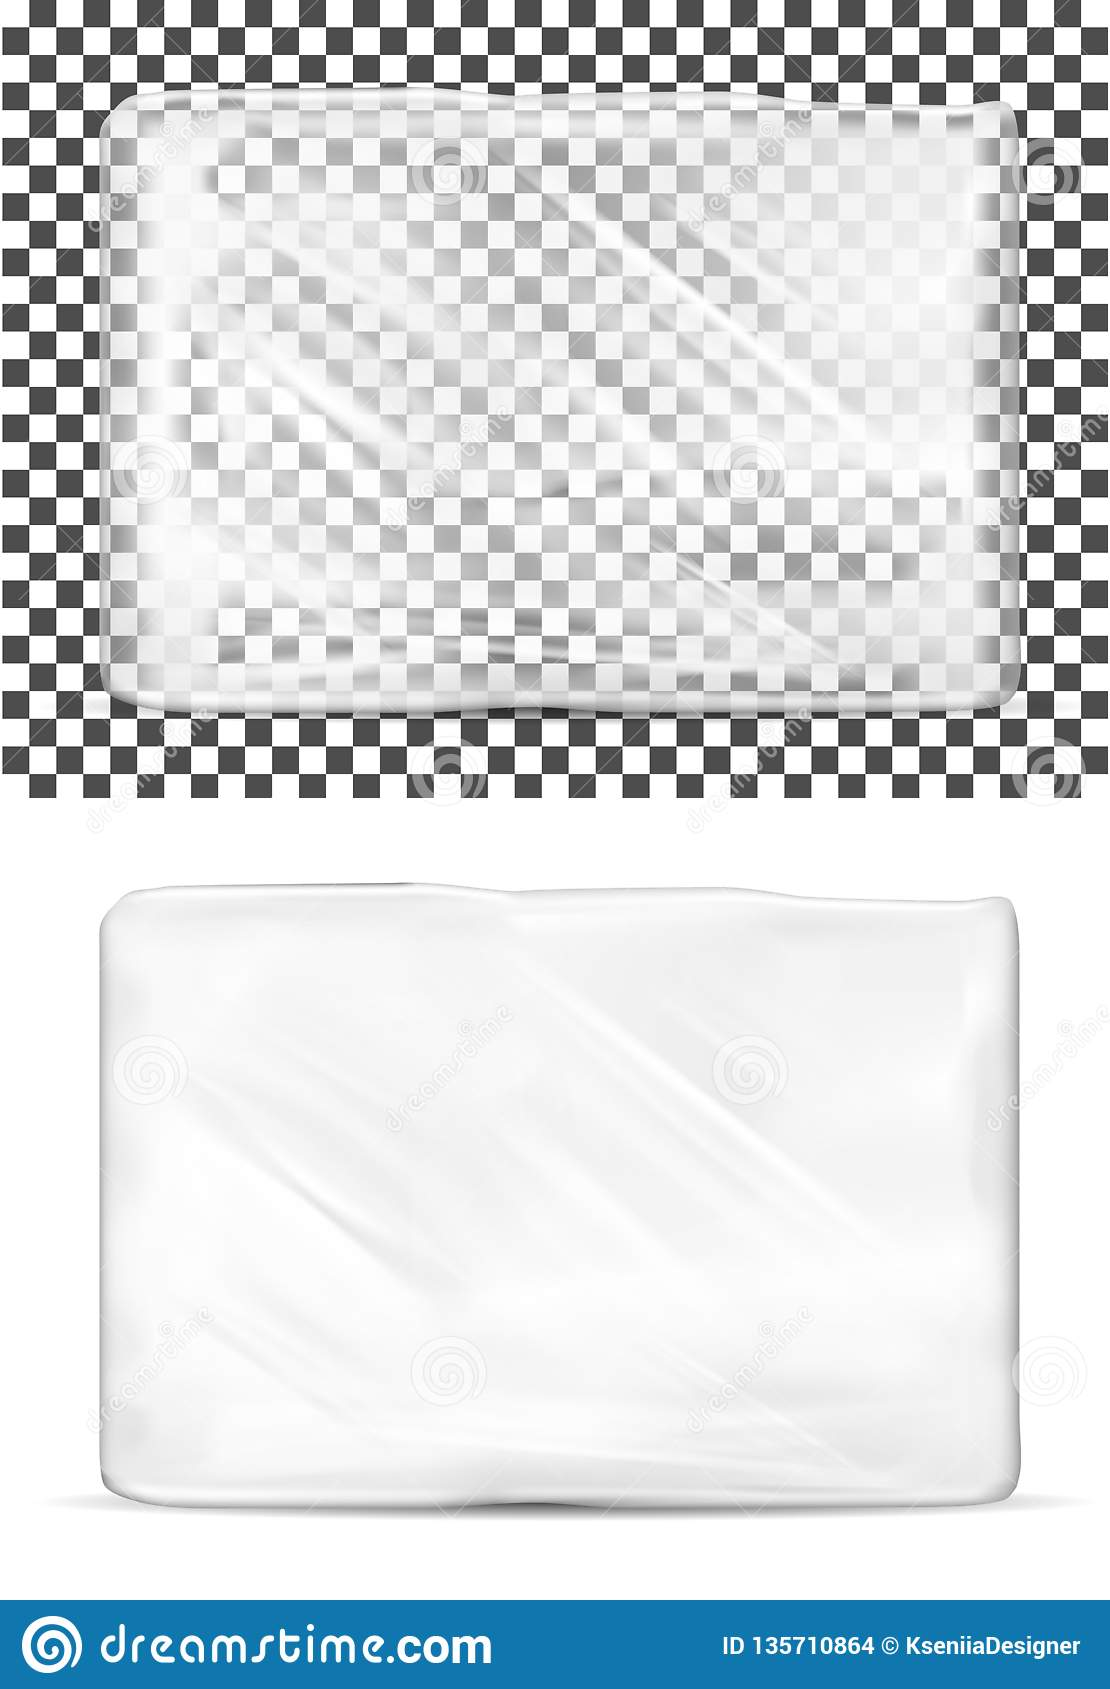 Transparent empty plastic packaging for toilet paper